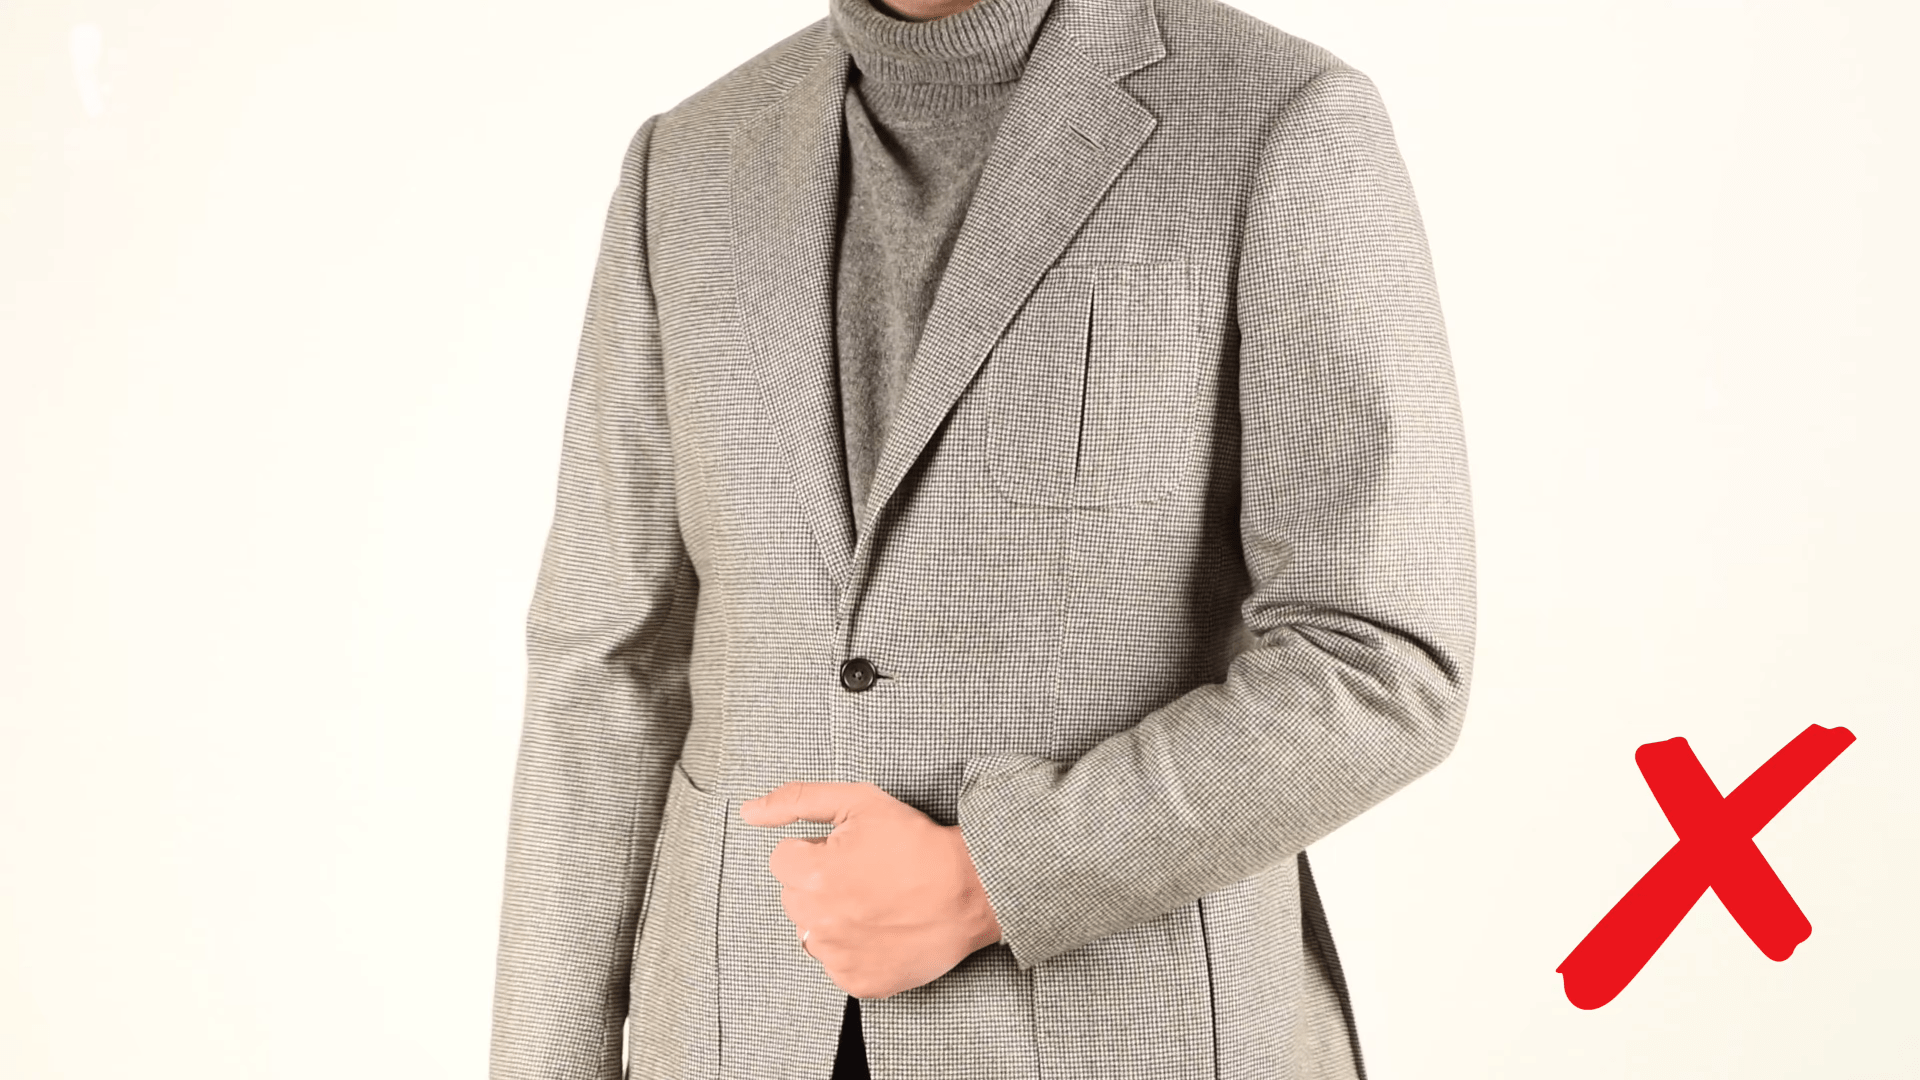 How To Pair Brown Gray Color Combos For Tans Greys In Menswear Gentleman S Gazette